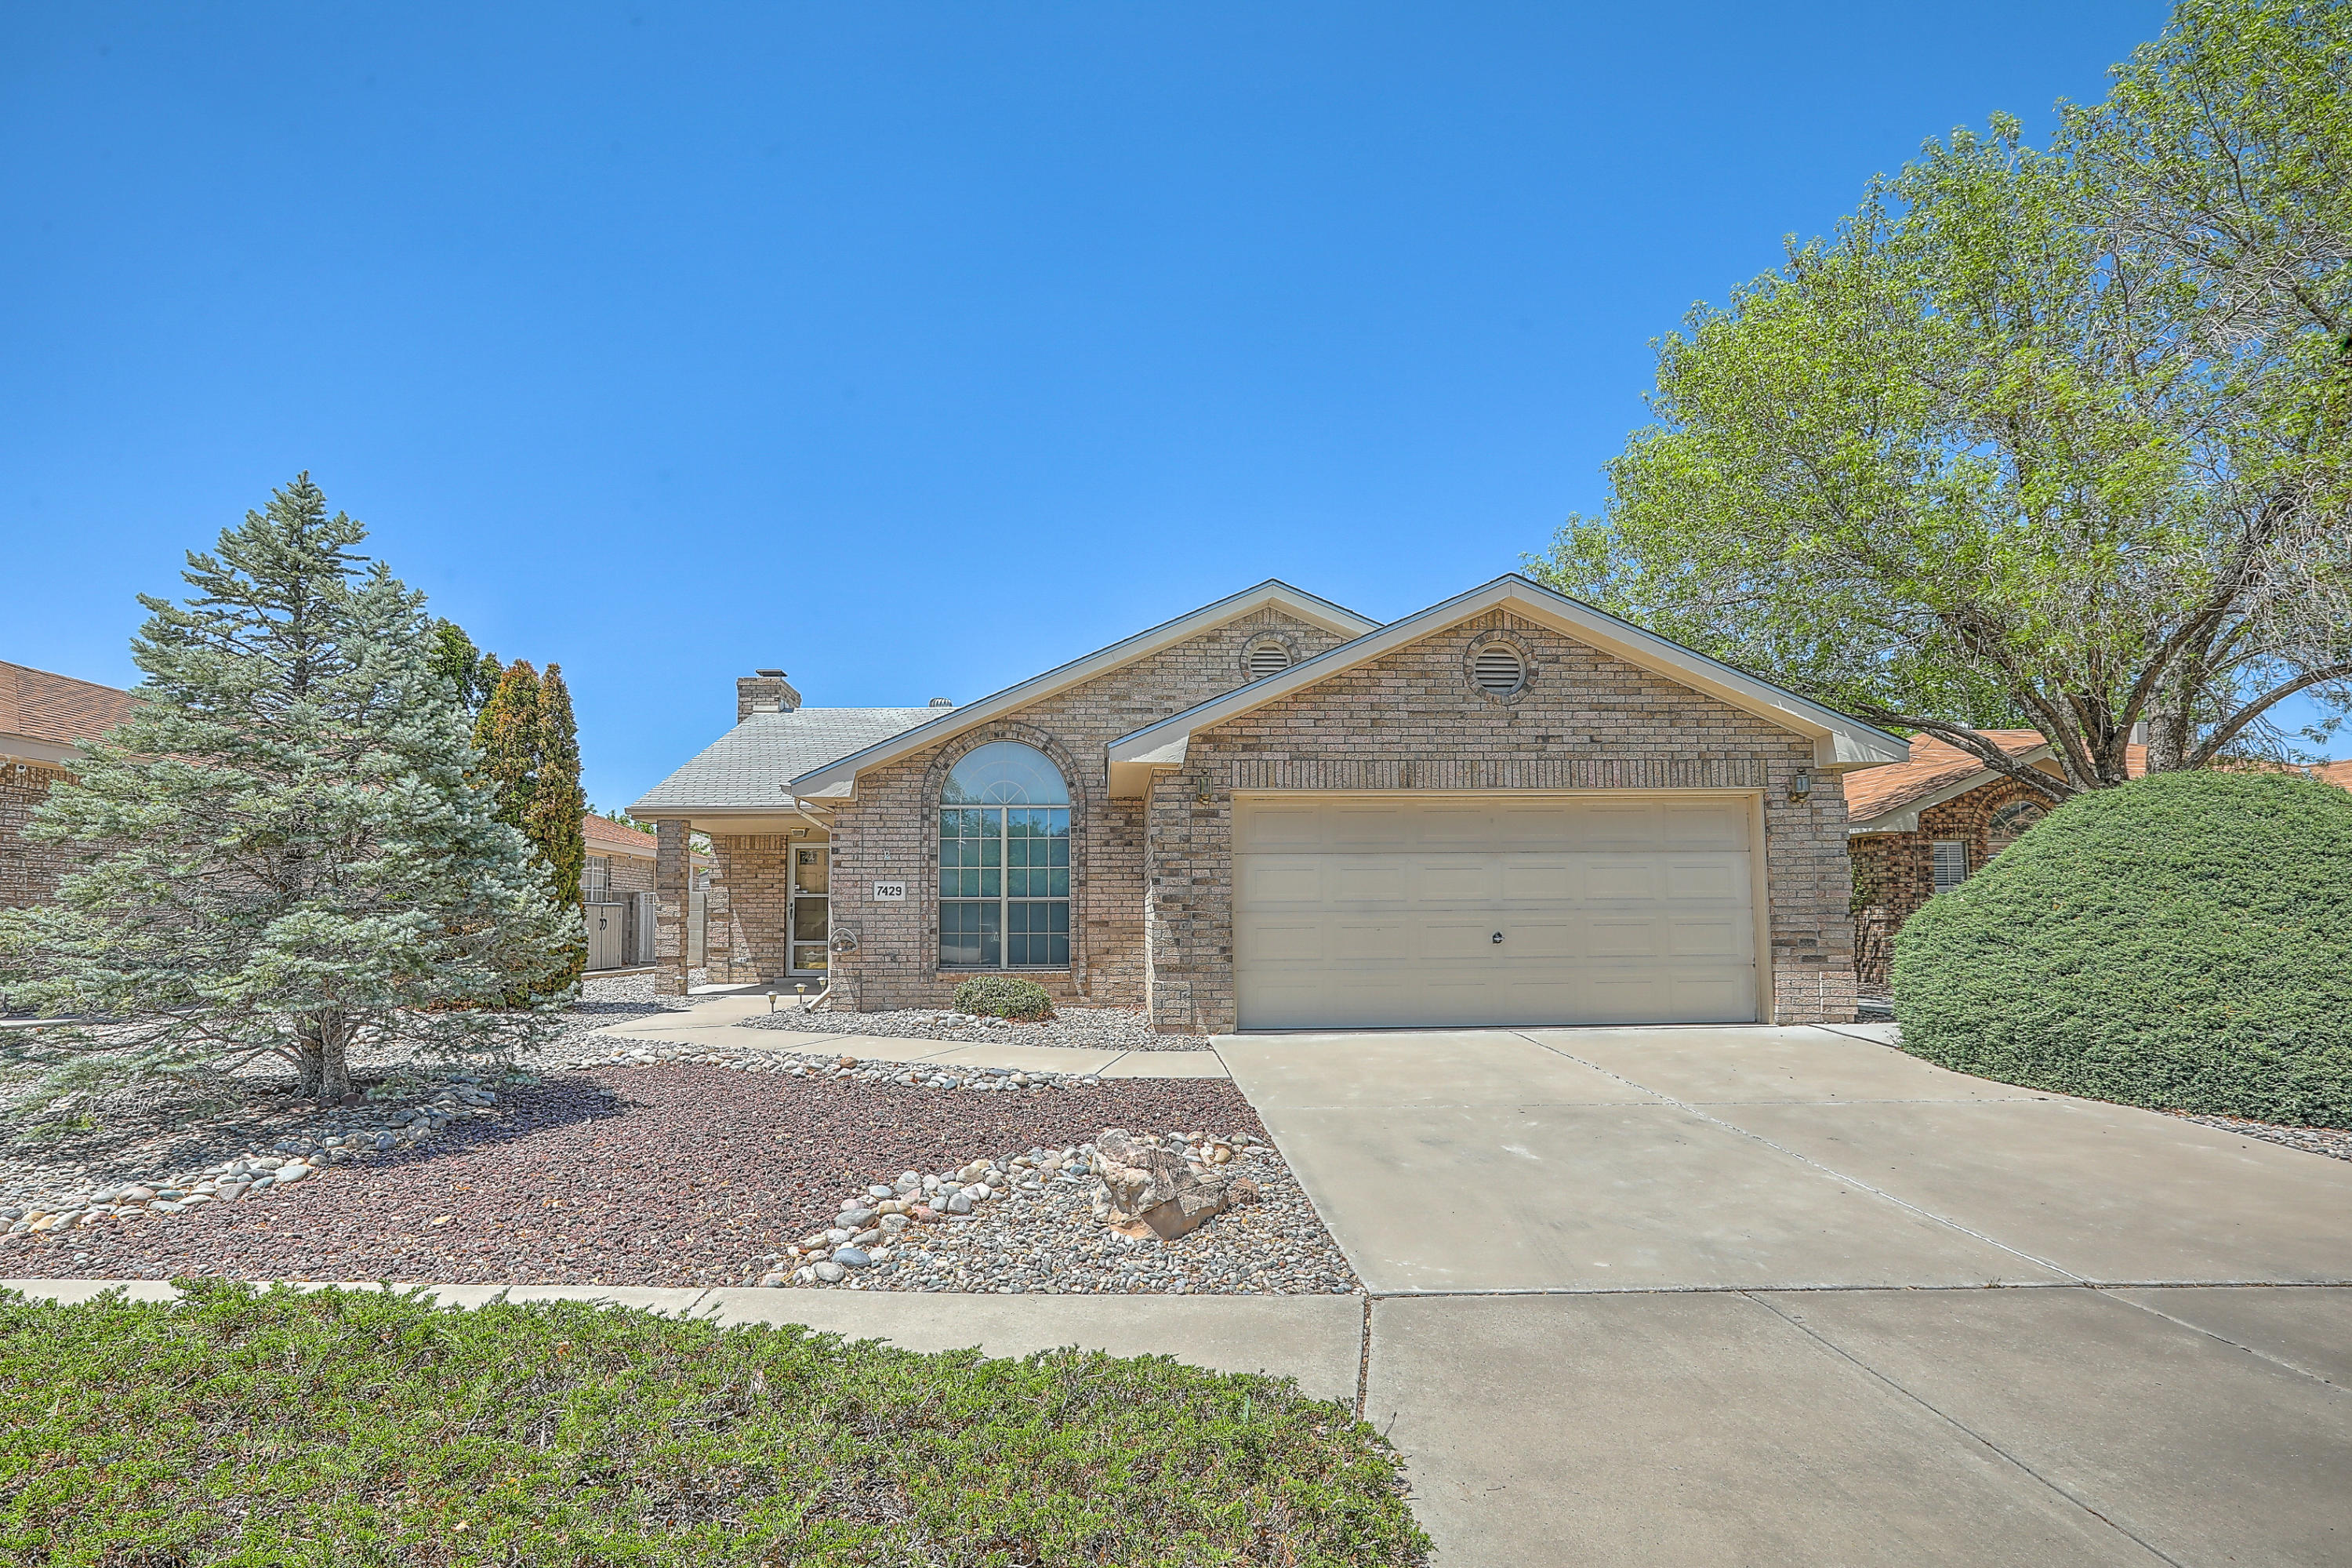 Beautiful Opal Jenkins Brick Veneer home located in Taylor Ranch. Home features - Large great room with fireplace, spacious - open and bright kitchen, Master bedroom plus 2 additional bedrooms, covered patio and refrigerated A/C!